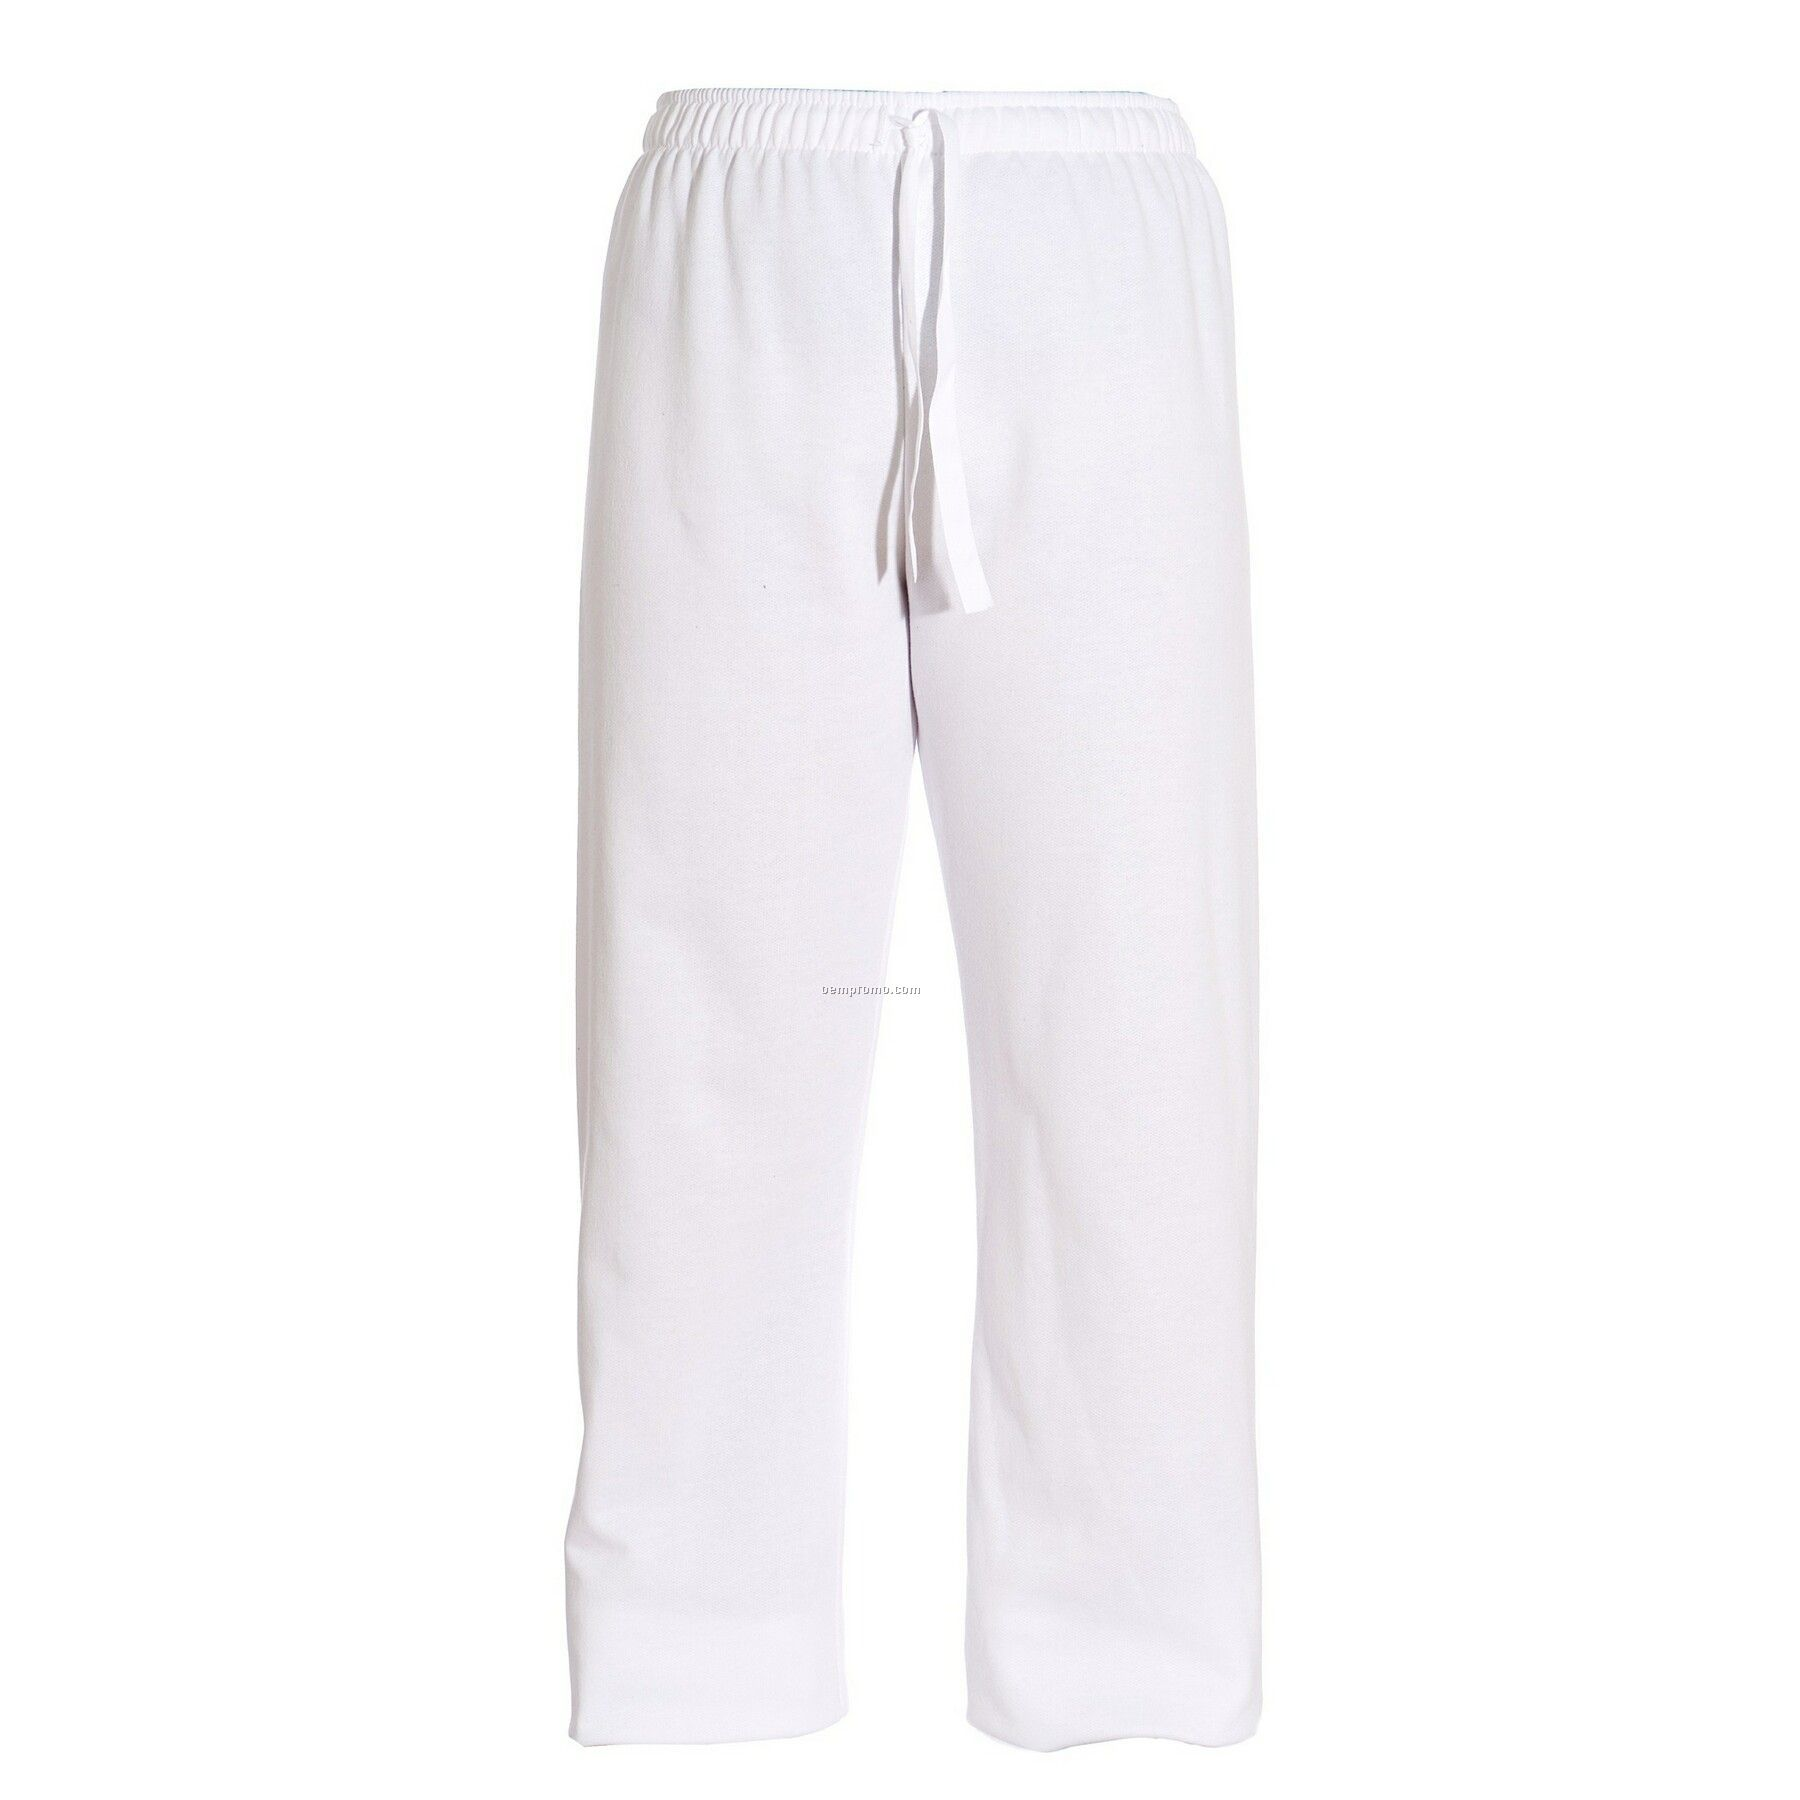 White. Purple. Silver. Yellow. Pink. Multicolor. Other. Assorted. Off-White. See more colors. Price $ to $ Go. Please enter a minimum and maximum price. $0 - $5. $5 - $ $10+ See more prices. Boy Sweatpants. Showing 48 of results that match your query. Search Product Result. Product - Fleece Jogger Sweatpant with Pockets (Little Boys.